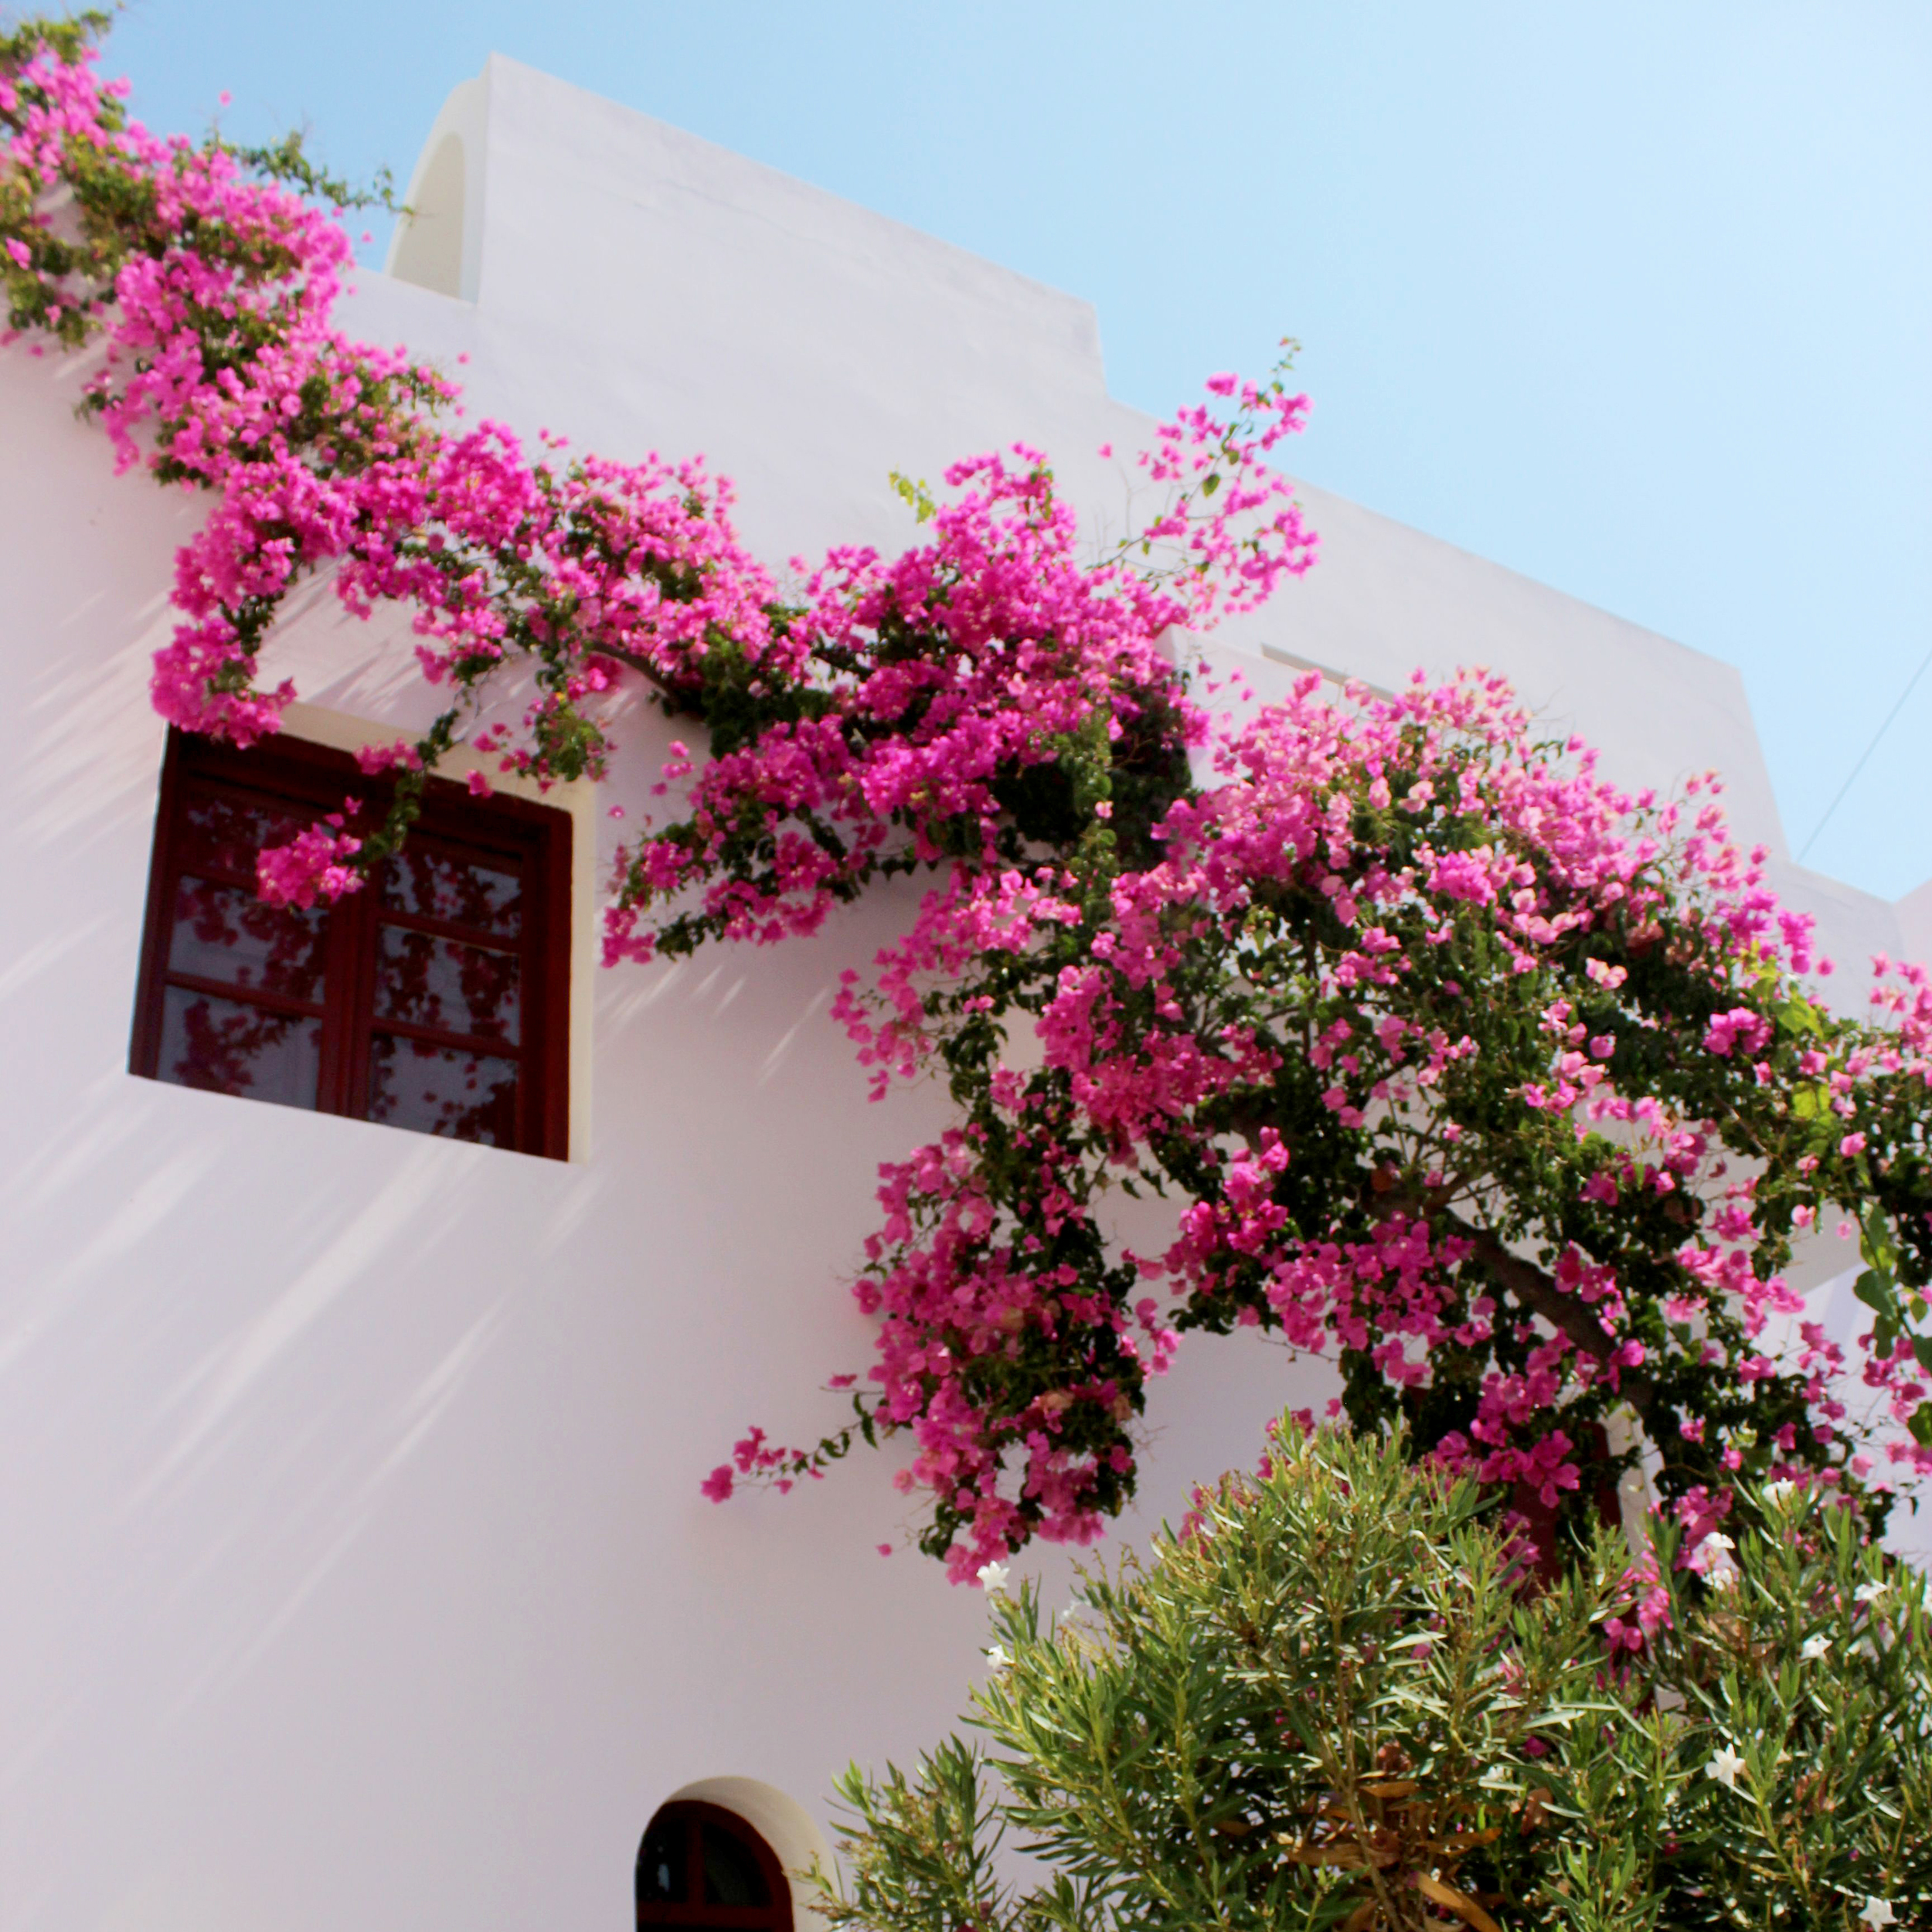 The more bougainvilleas, the better!